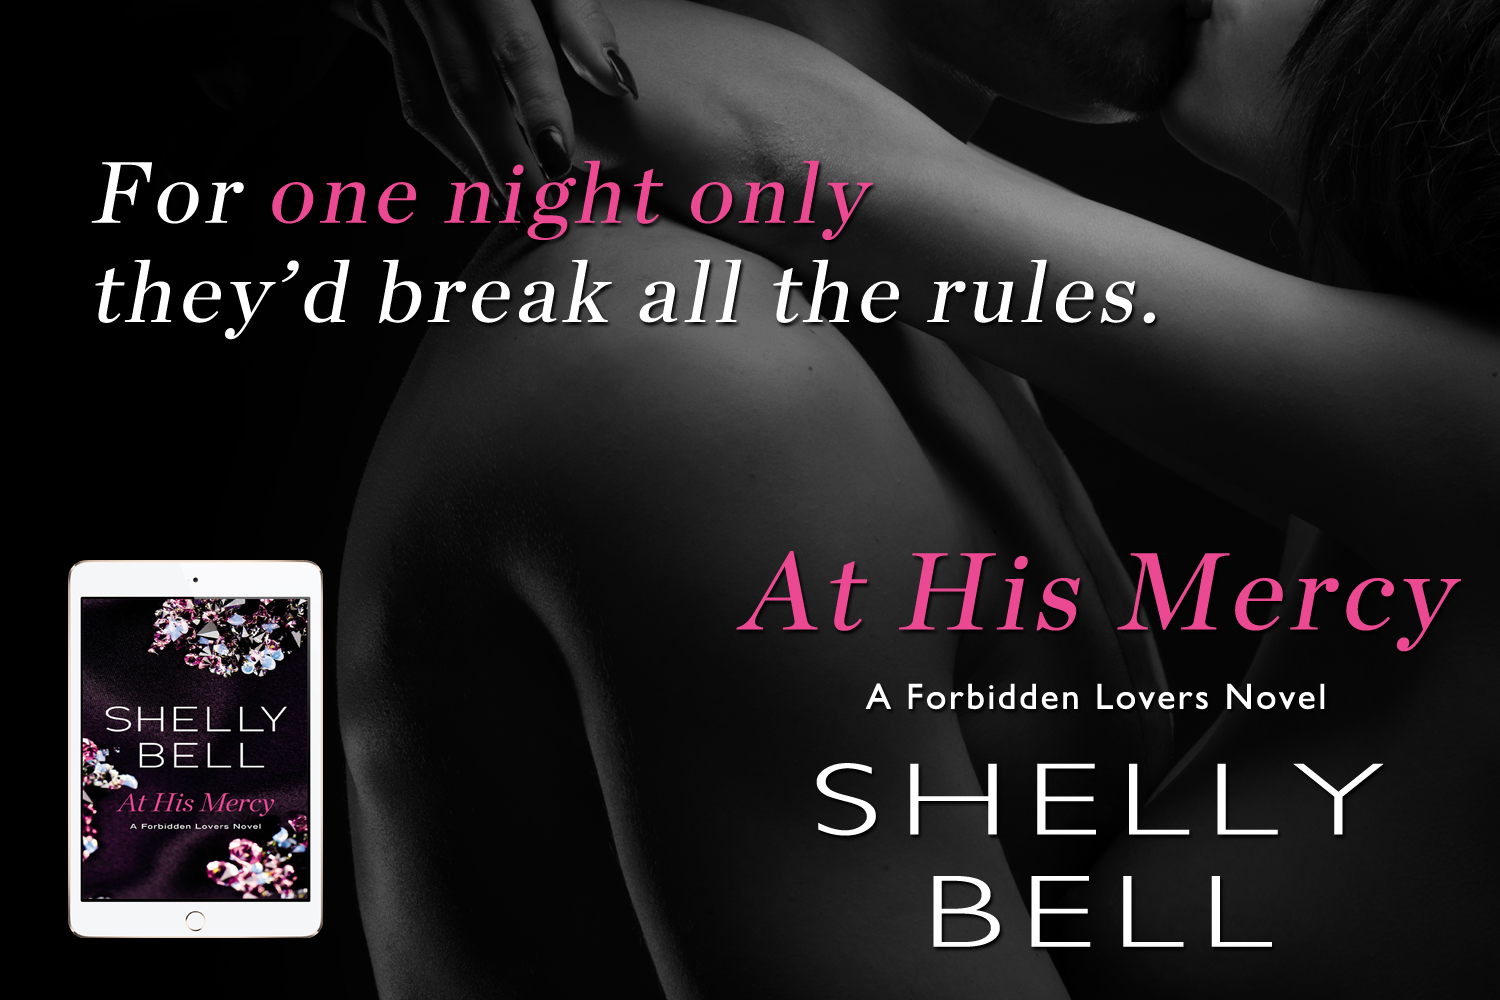 At his mercy shelly bell 1